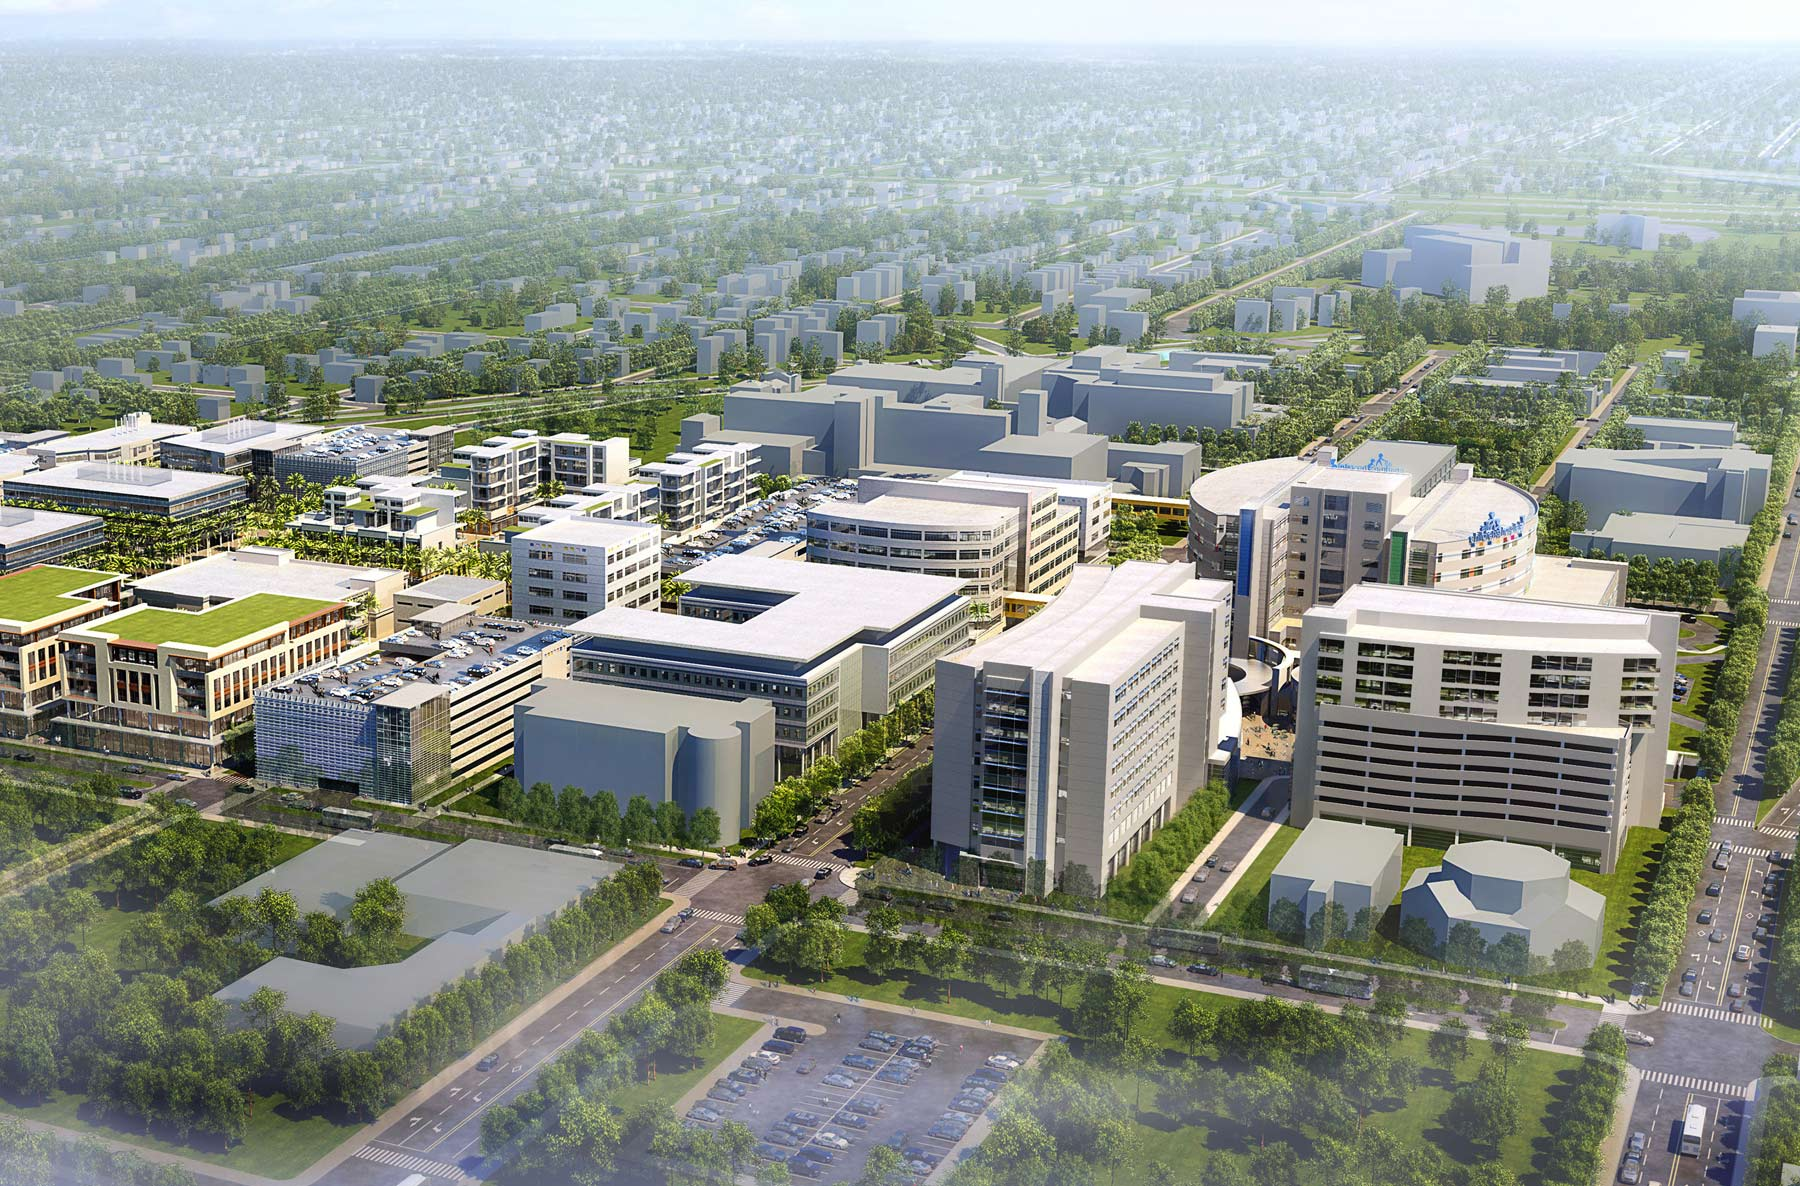 Johns Hopkins All Children's Hospital - Master Plan